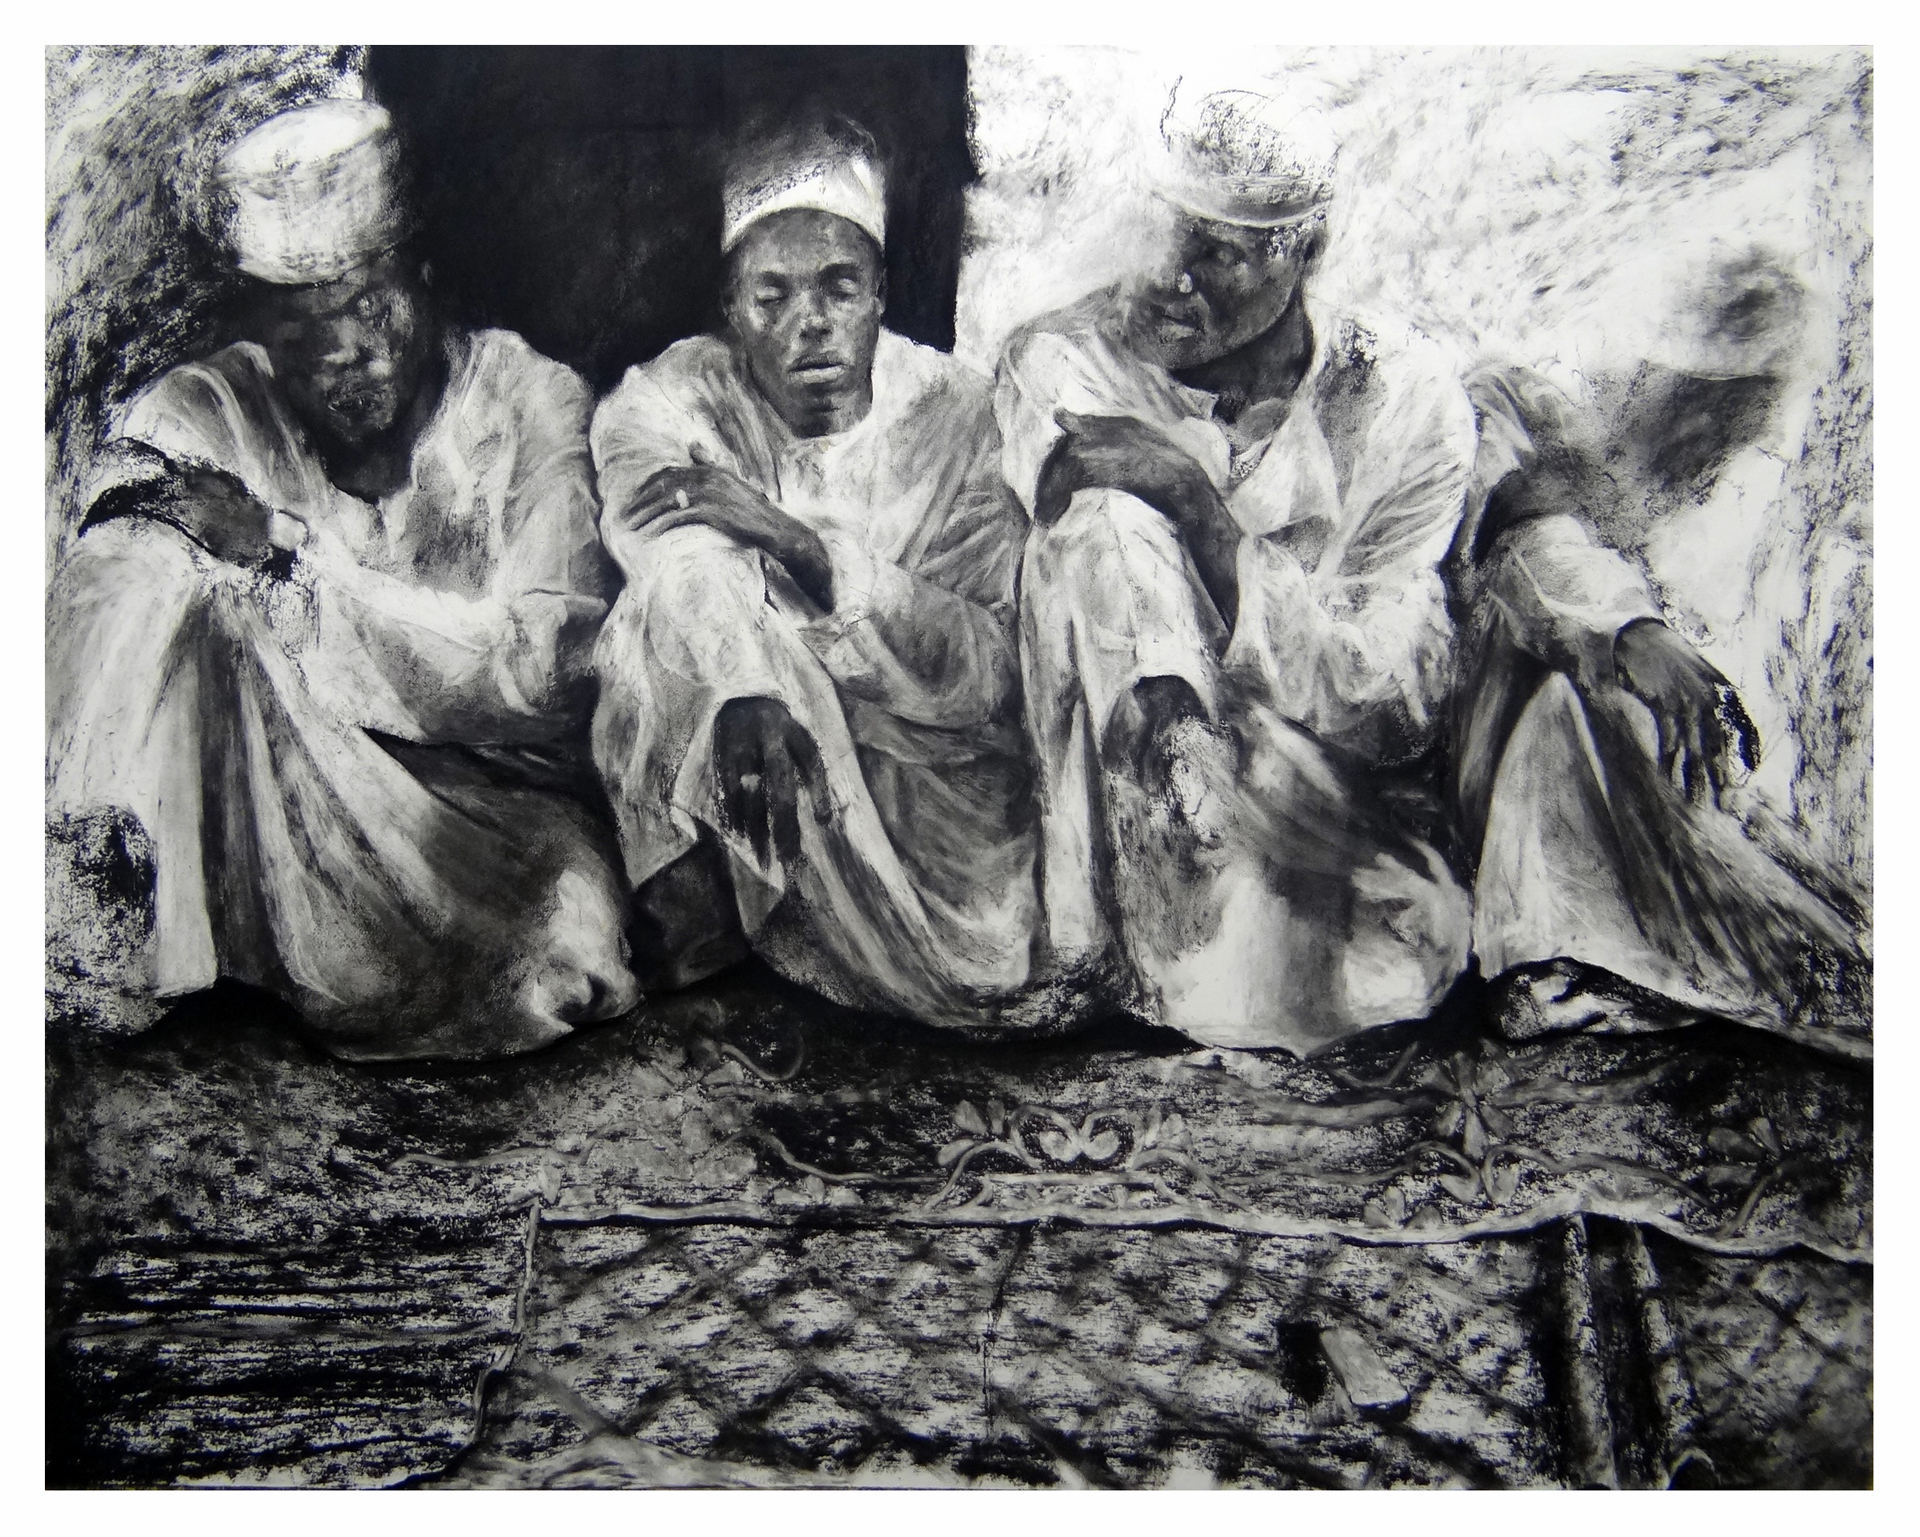 Shwari  Charcoal and carbon on paper  153cm x 122cm  2014